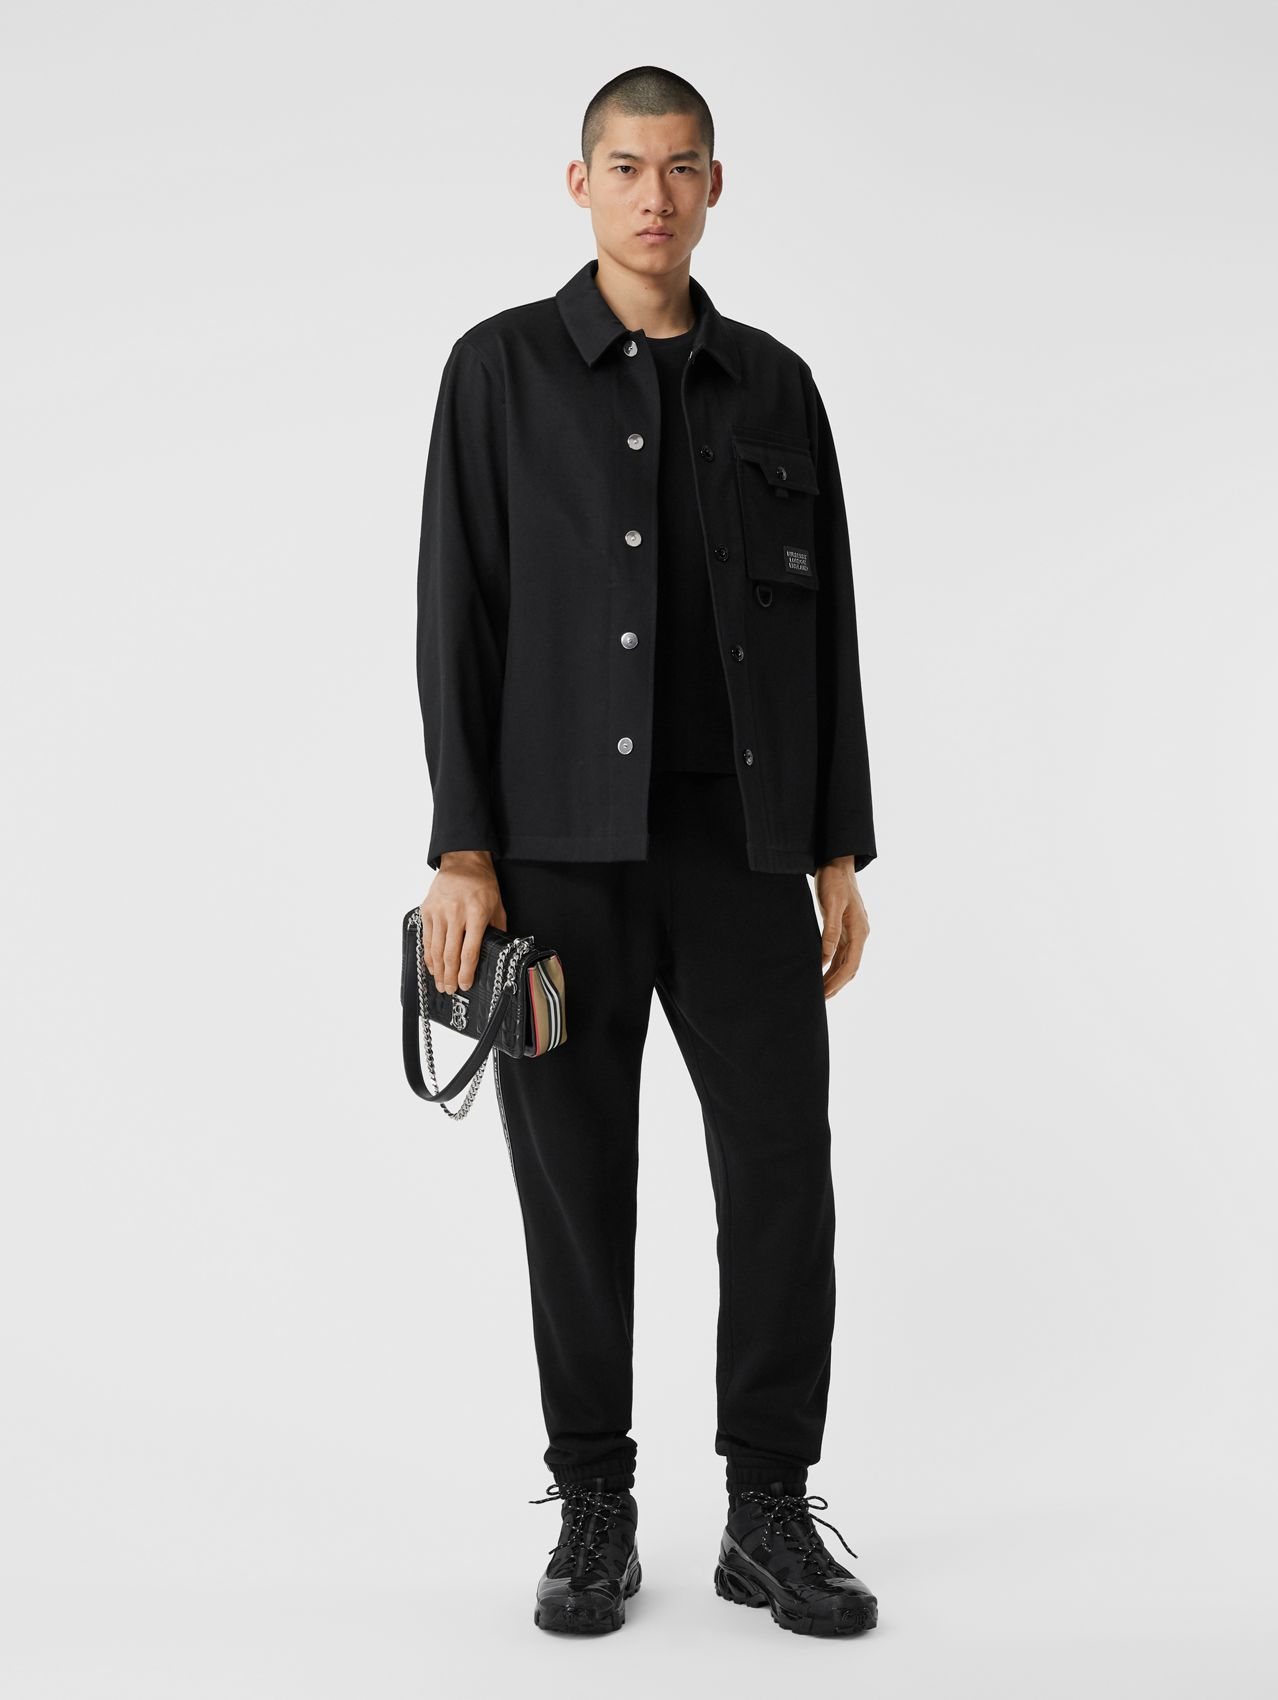 Logo Appliqué Bonded Cotton Sateen Jacket in Black